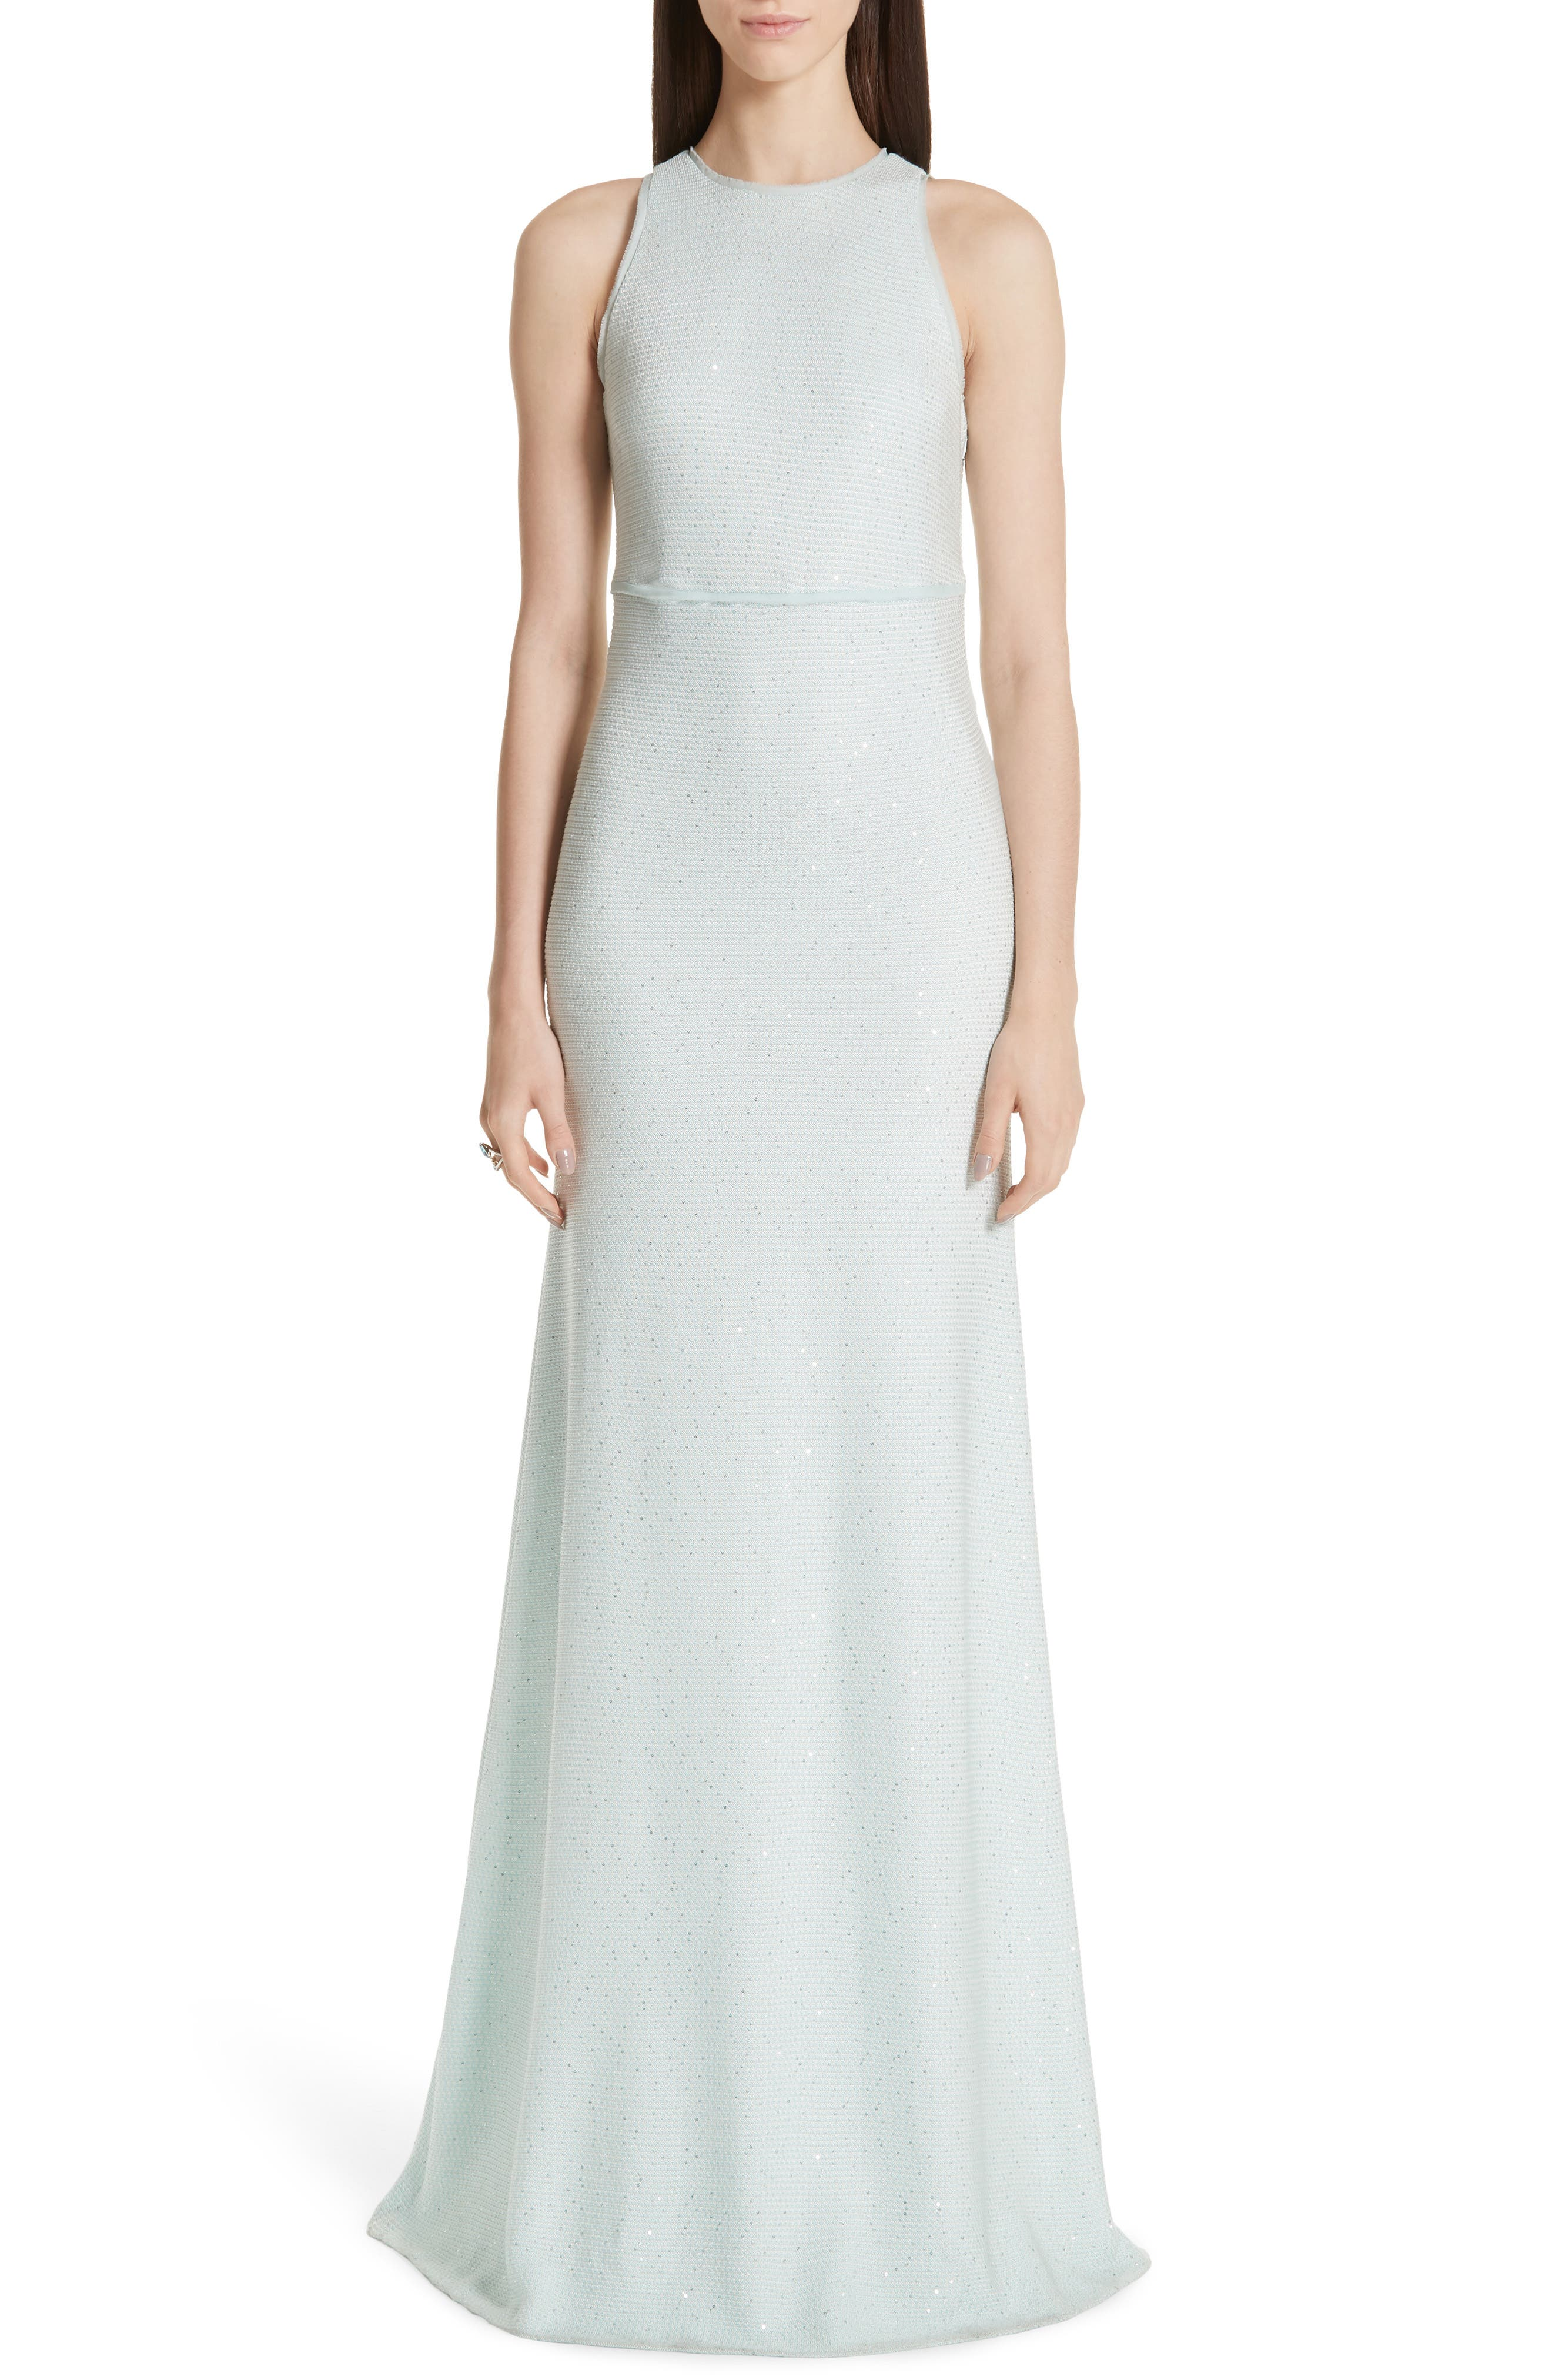 St. John Collection Links Sequin Knit Gown, Blue